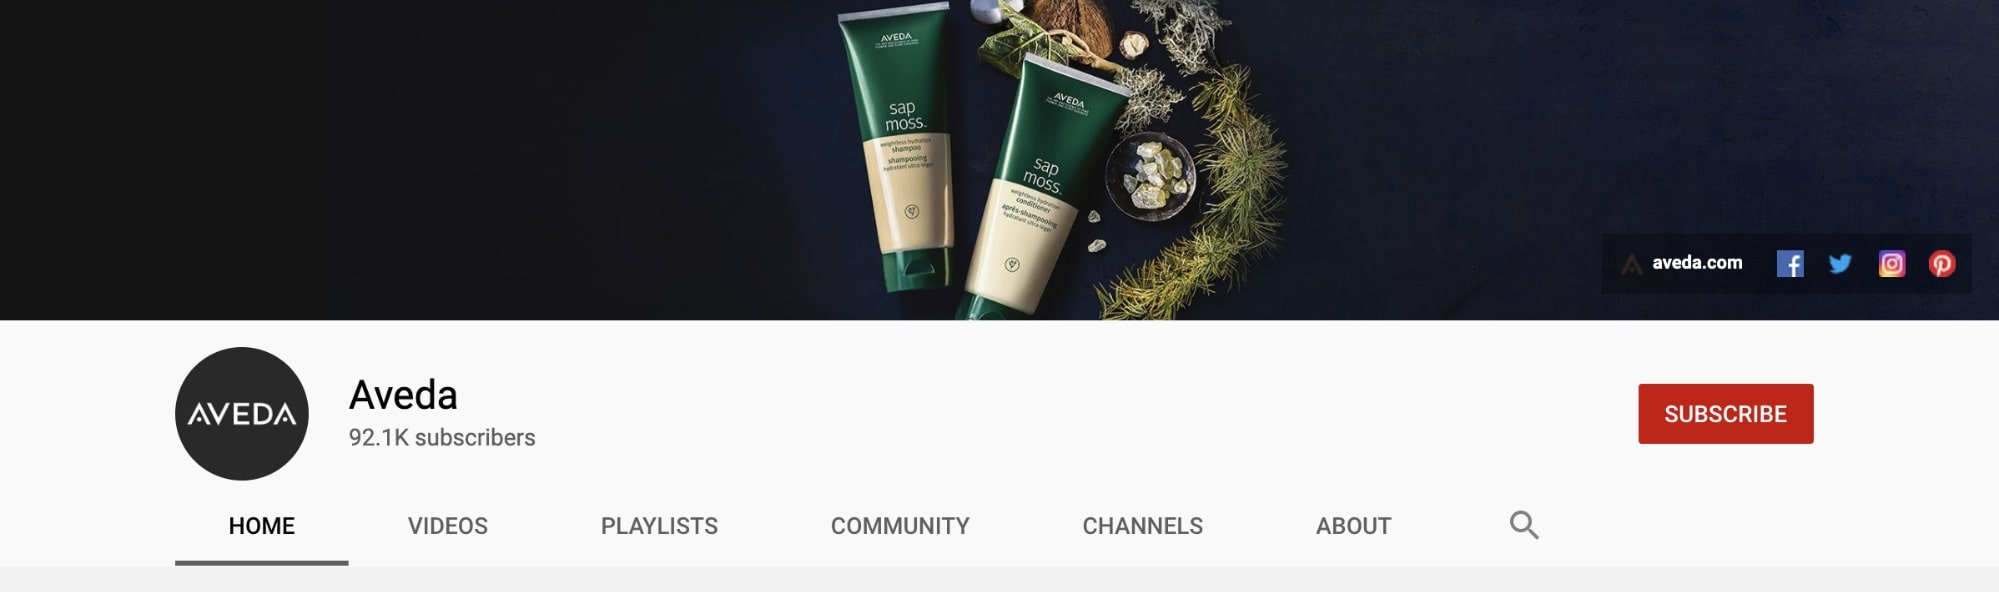 Aveda YouTube channel